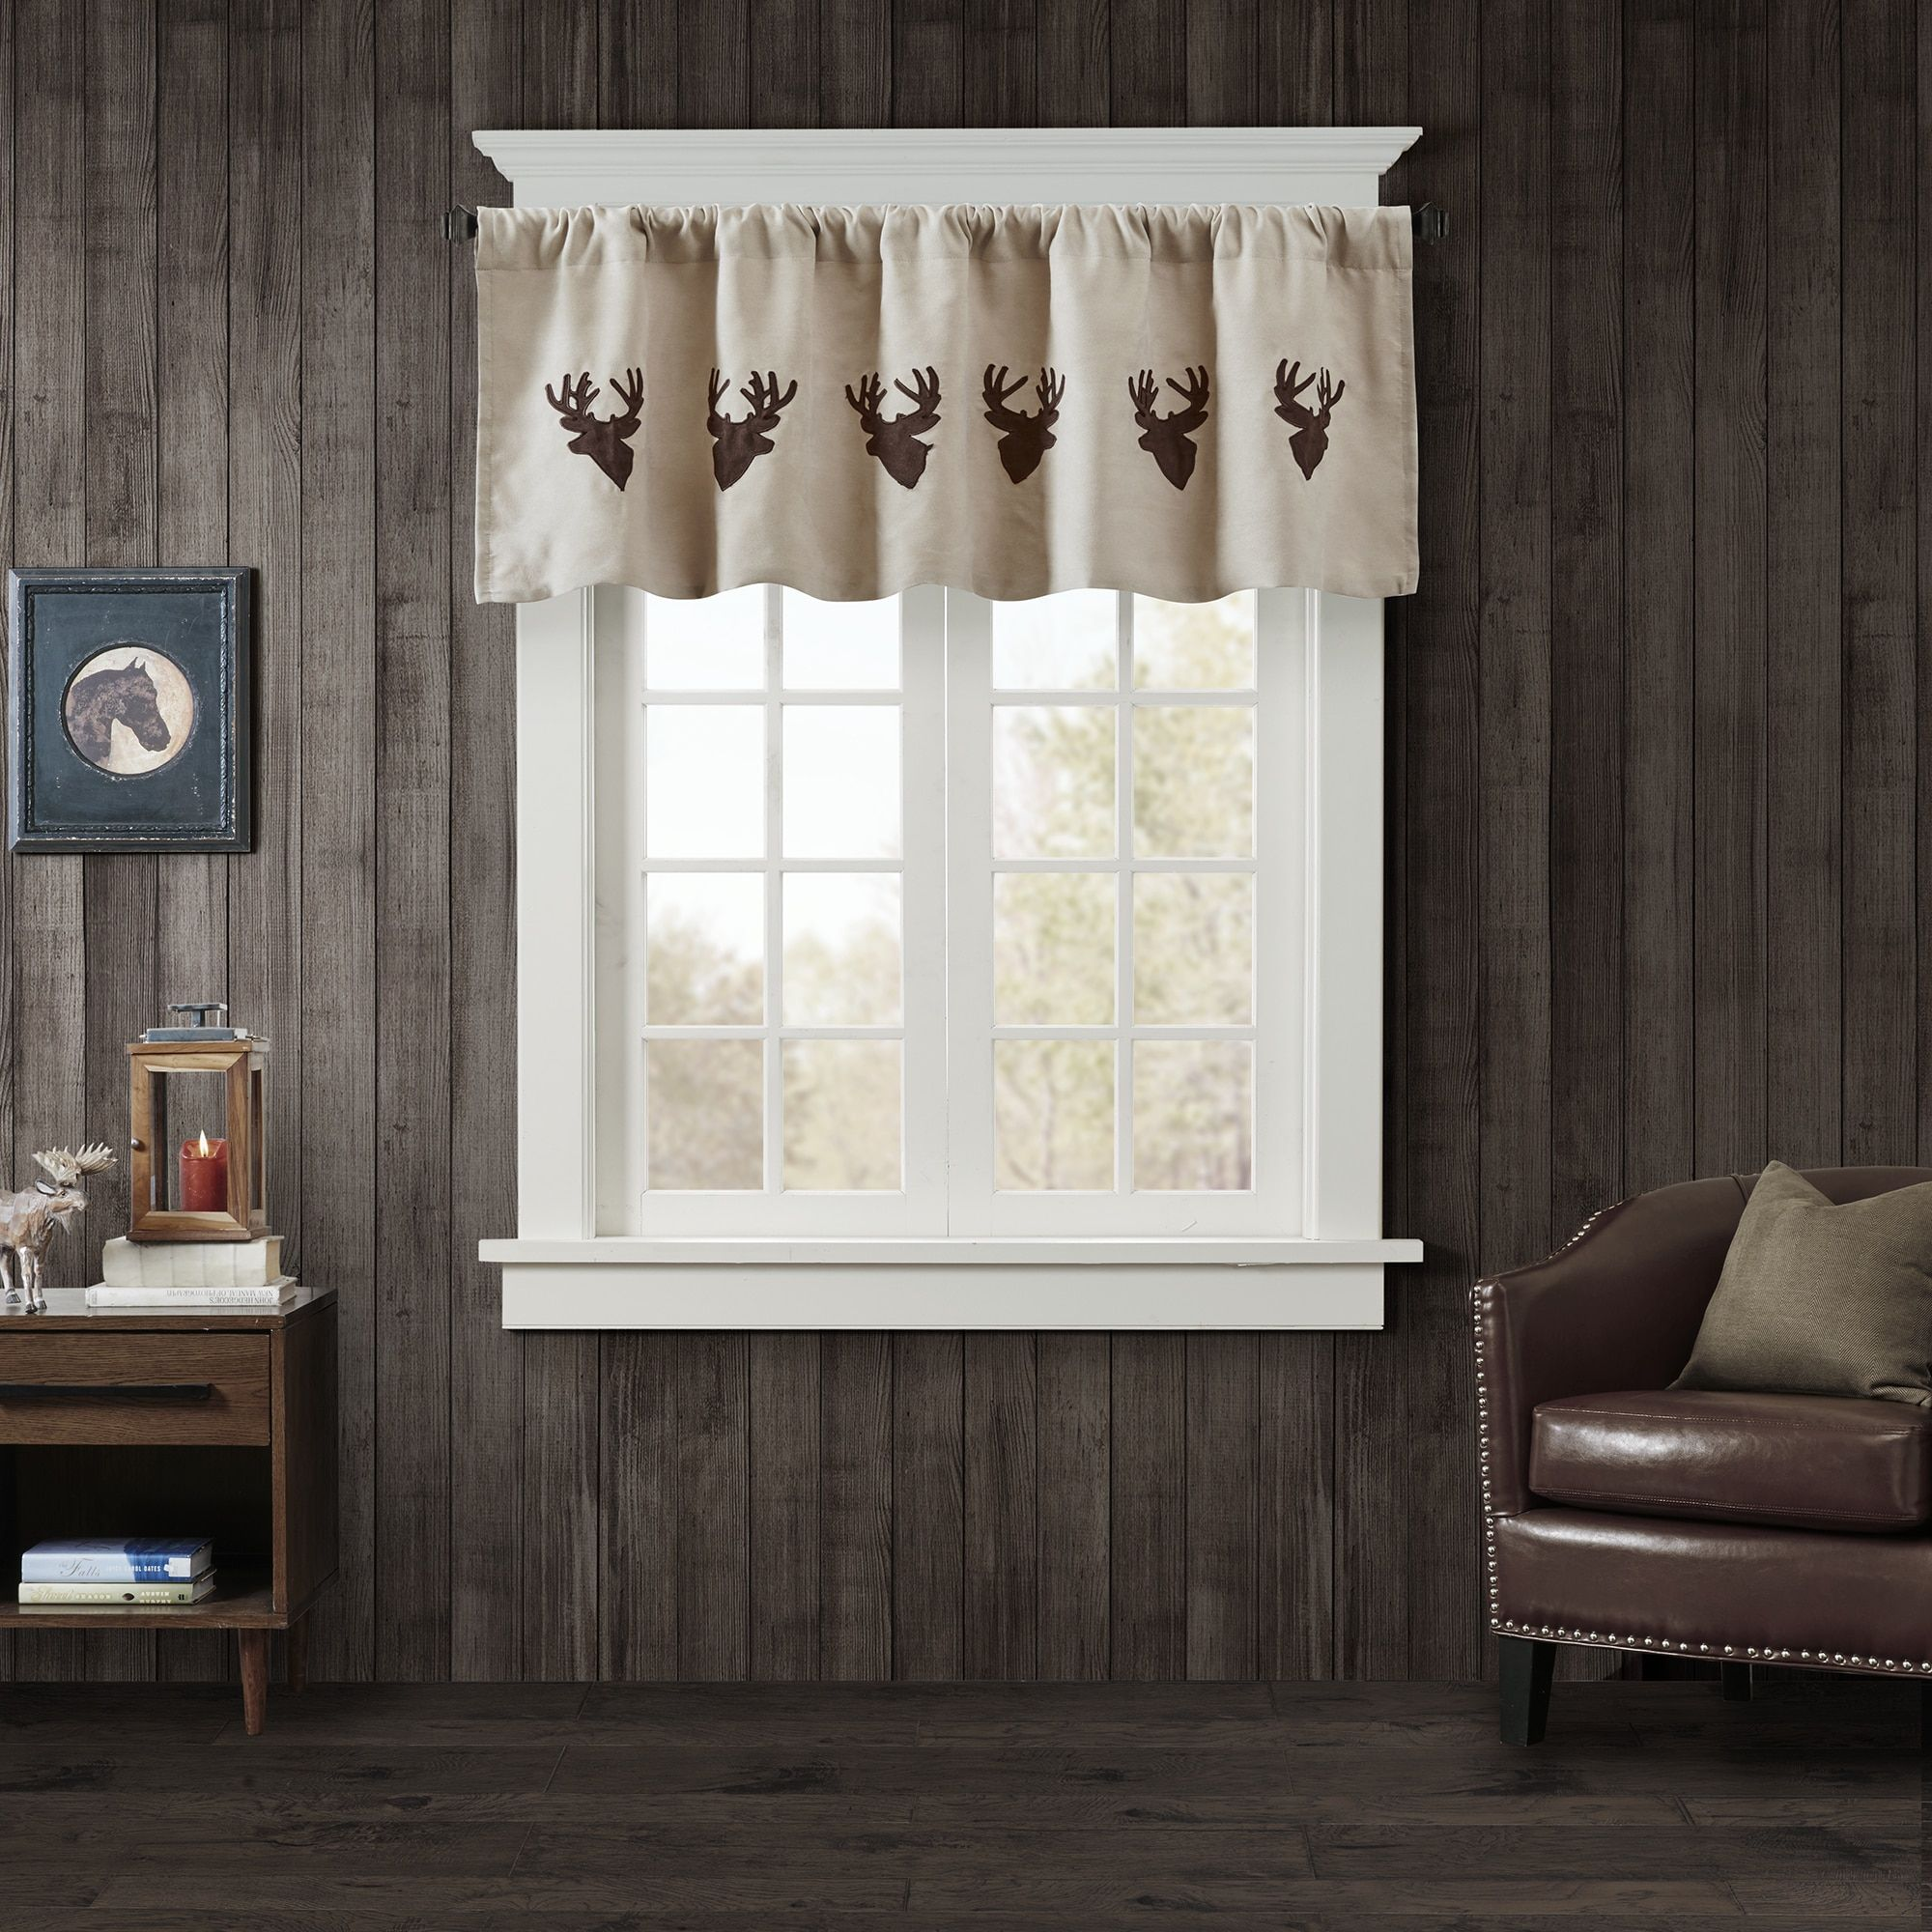 Bathroom Window Valance,Casual Home Goods: Free Shipping On Orders Over $45  At Overstock